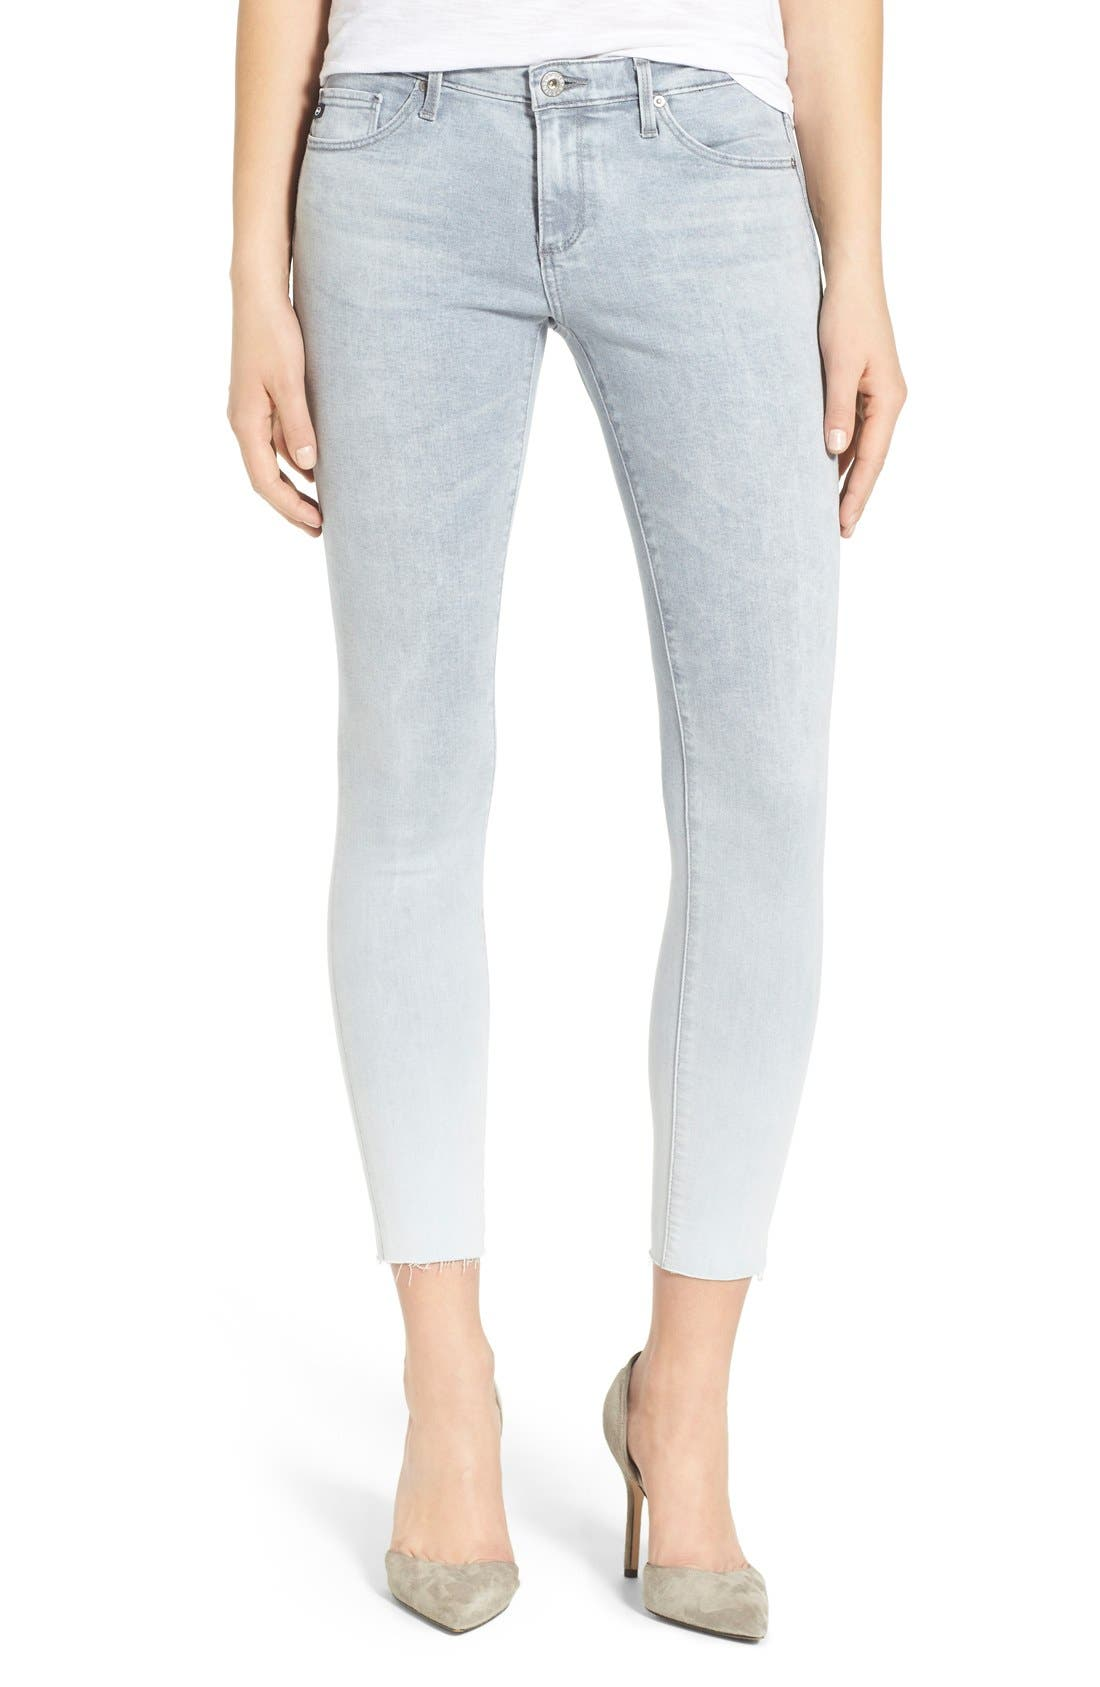 'The Legging' Raw Edge Ankle Skinny Jeans,                             Main thumbnail 1, color,                             Optical Moon